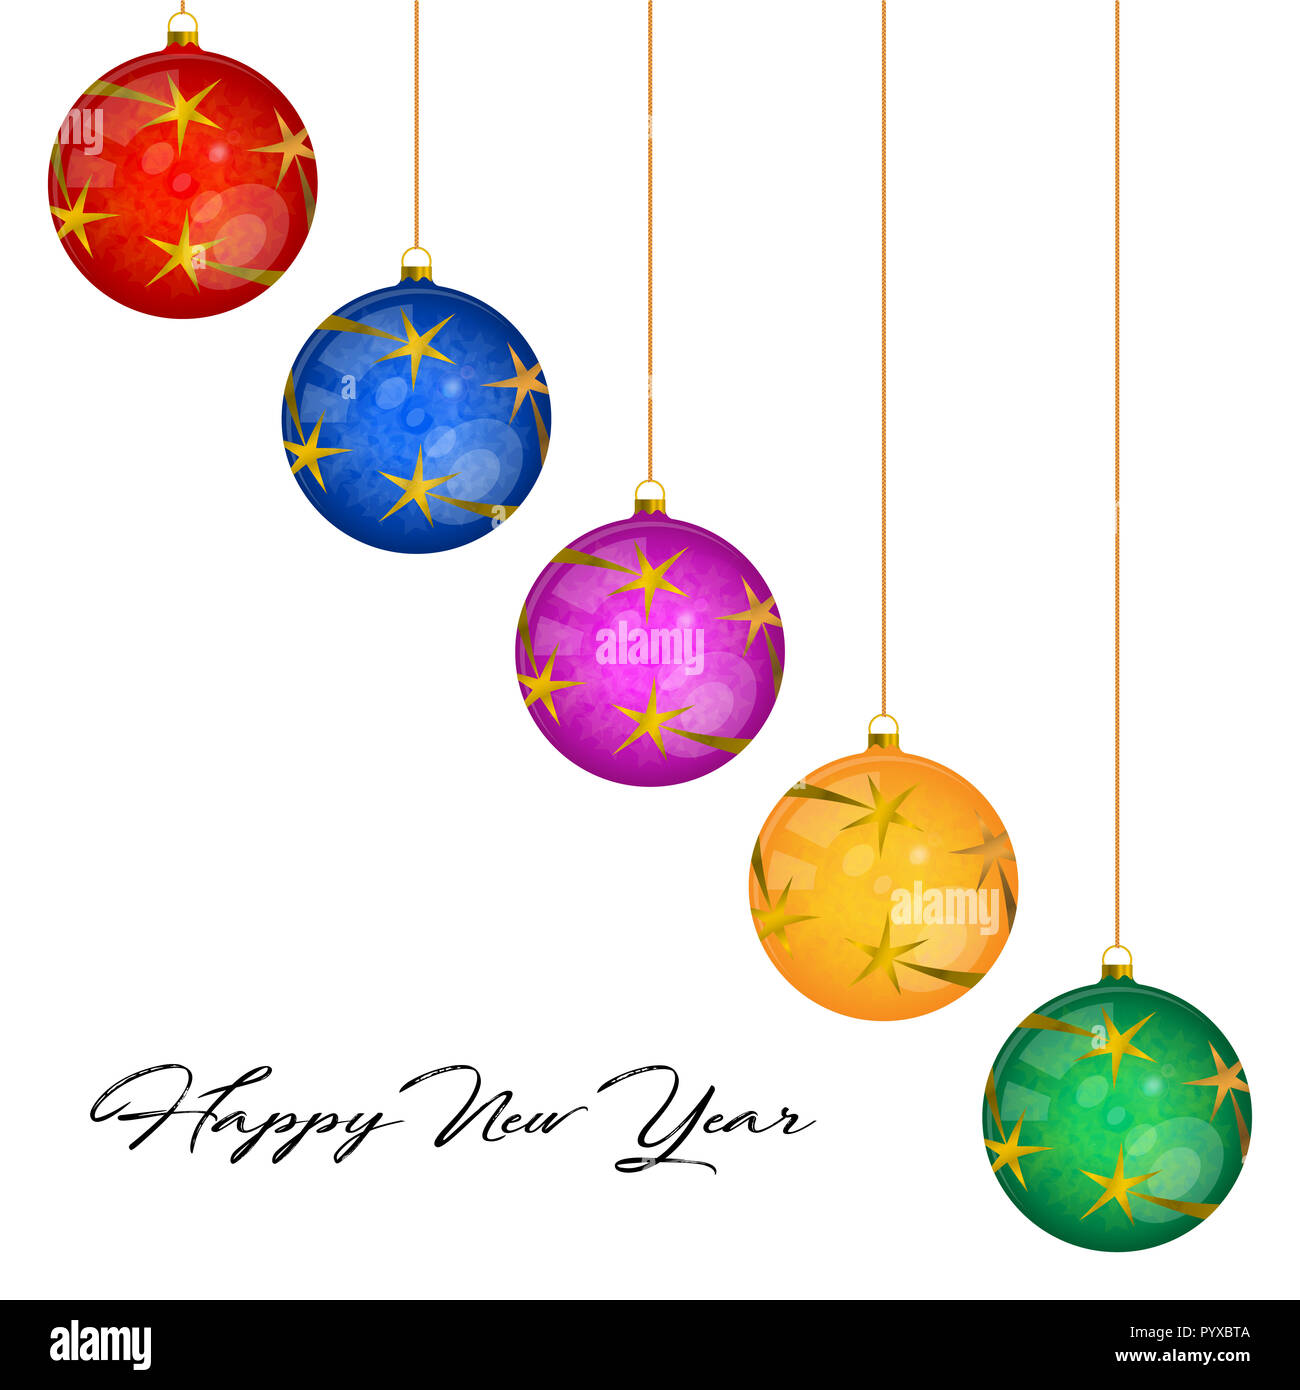 multicolored glass christmas balls greeting card template merry christmas and happy new year design elements resource for creating postcards calen